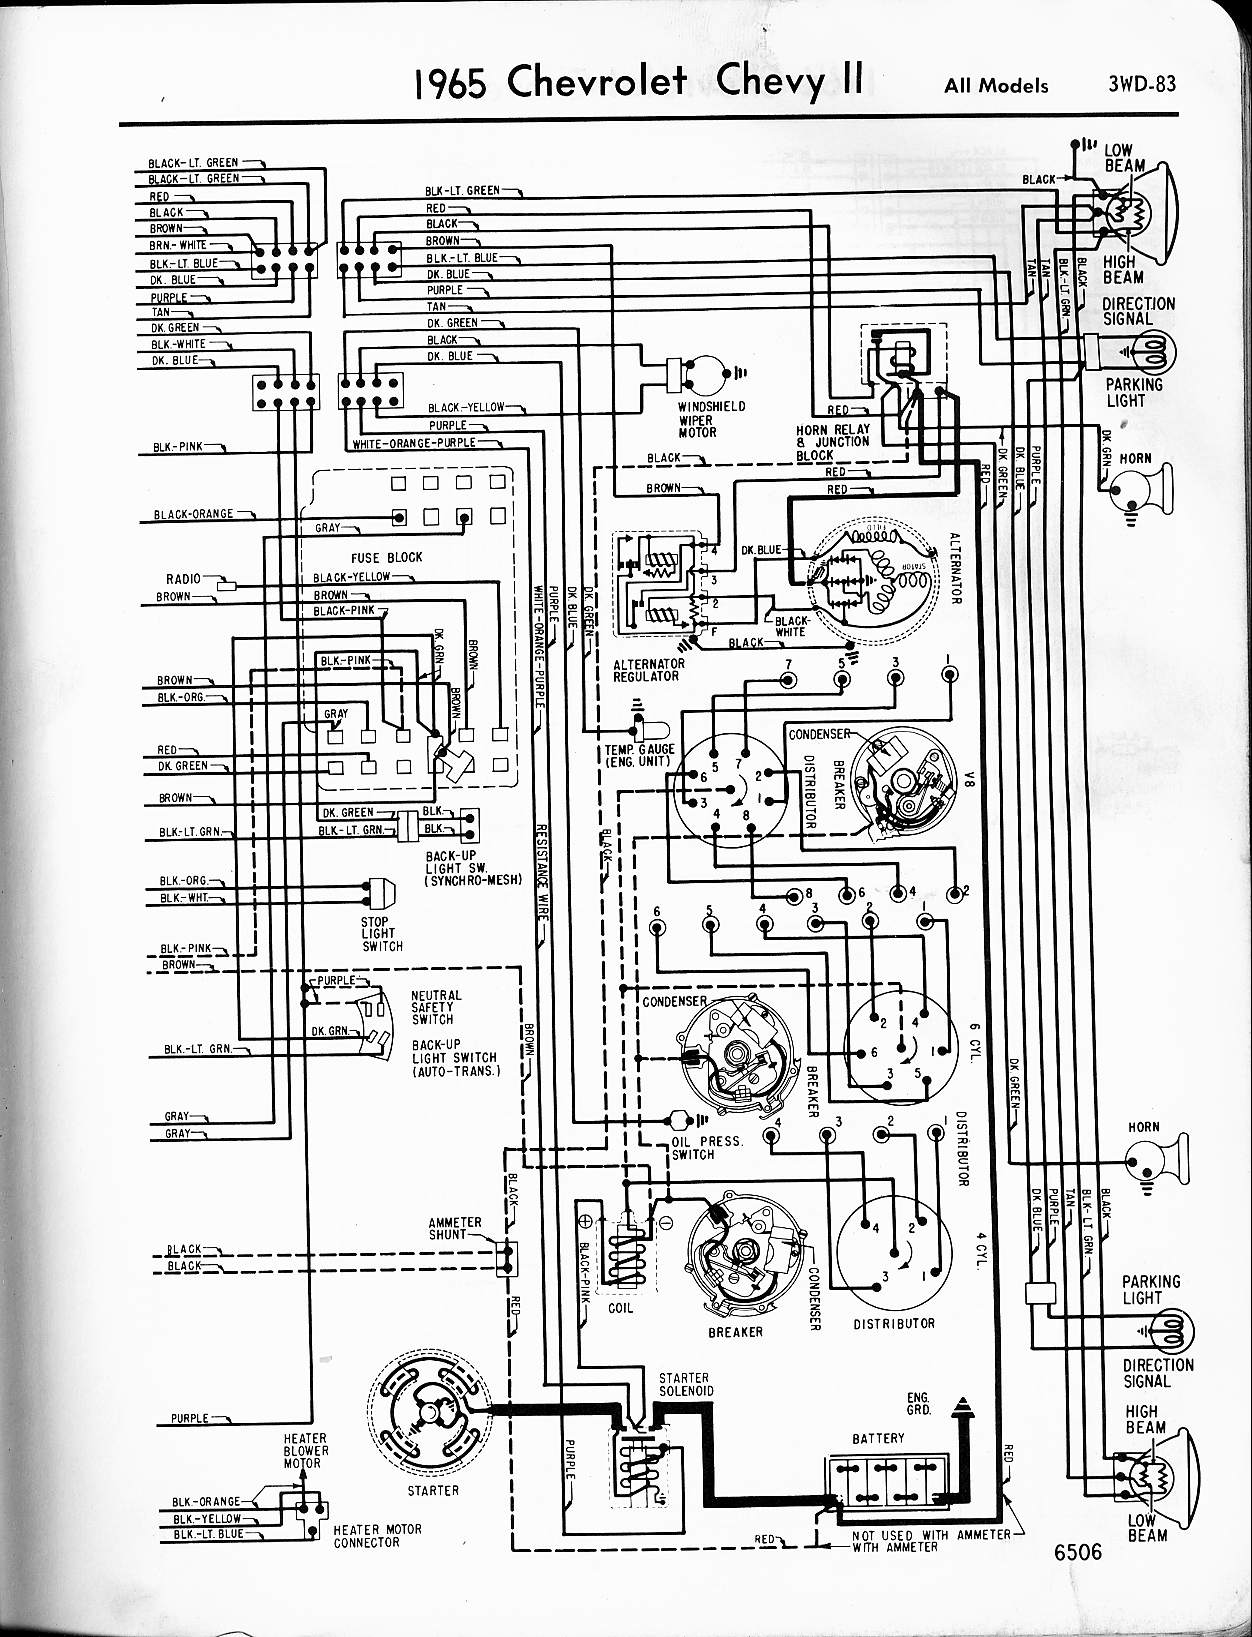 Chevy Diagrams Marine Air Systems Wiring Diagram 1965 Ii Figure A B